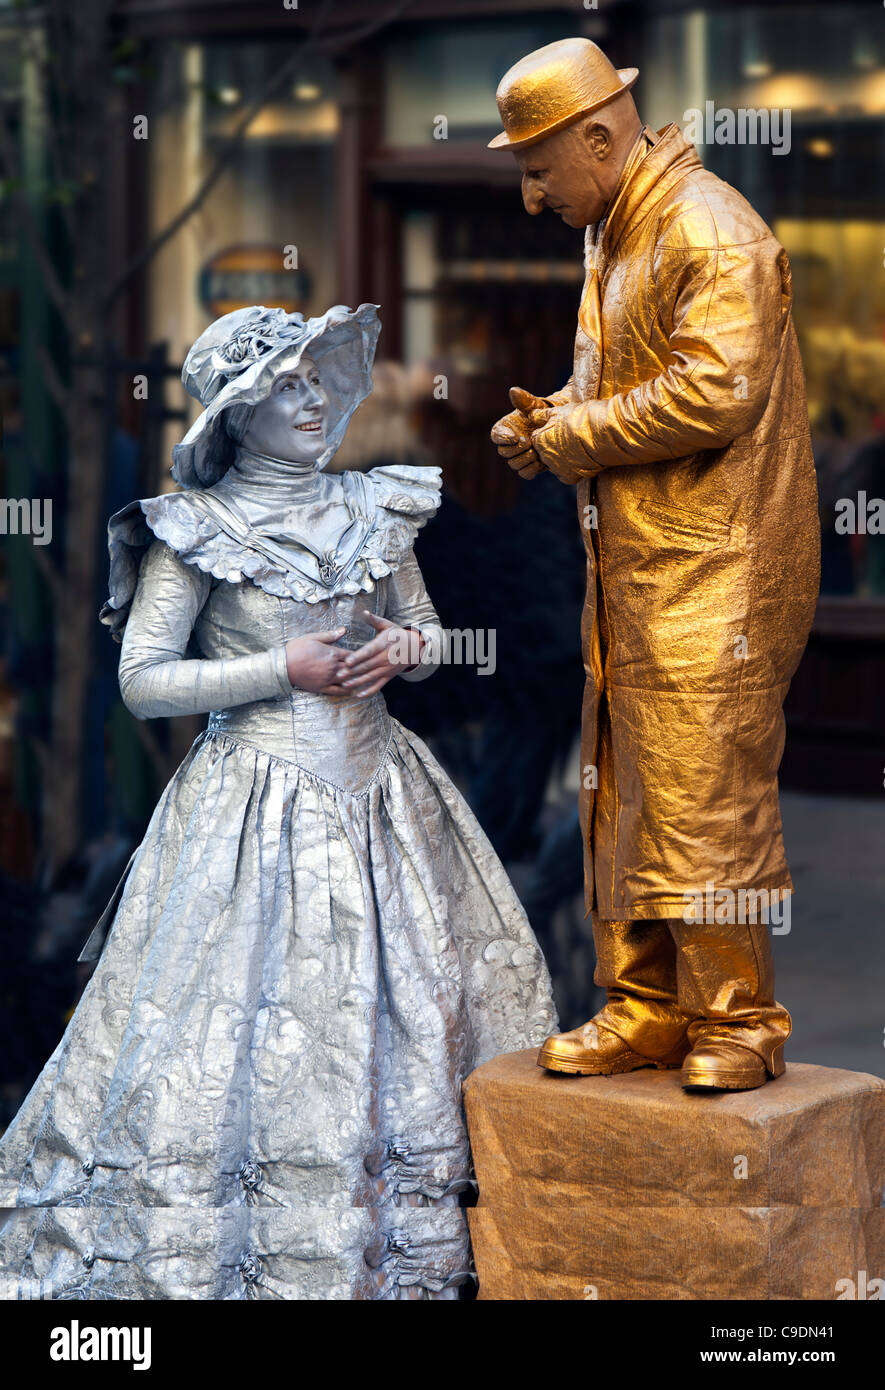 Gold man with Silver lady street performer chatting at Covent Garden in London UK - Stock Image